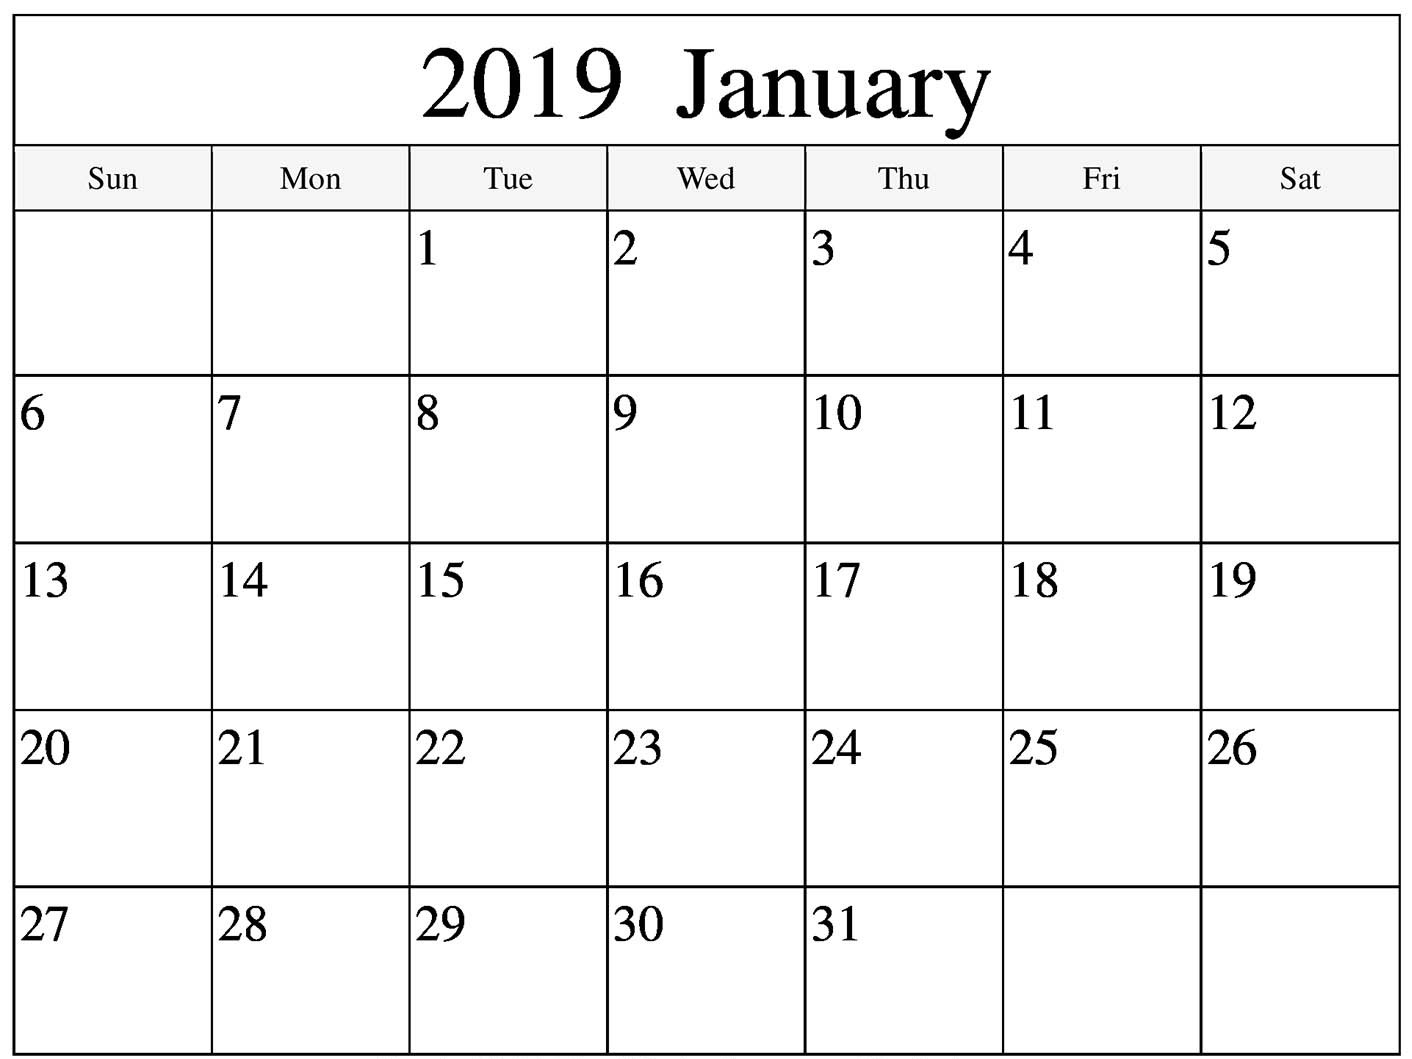 Print January 2019 Calendar - Printable Calendar Templates within Picture Of A January Calender